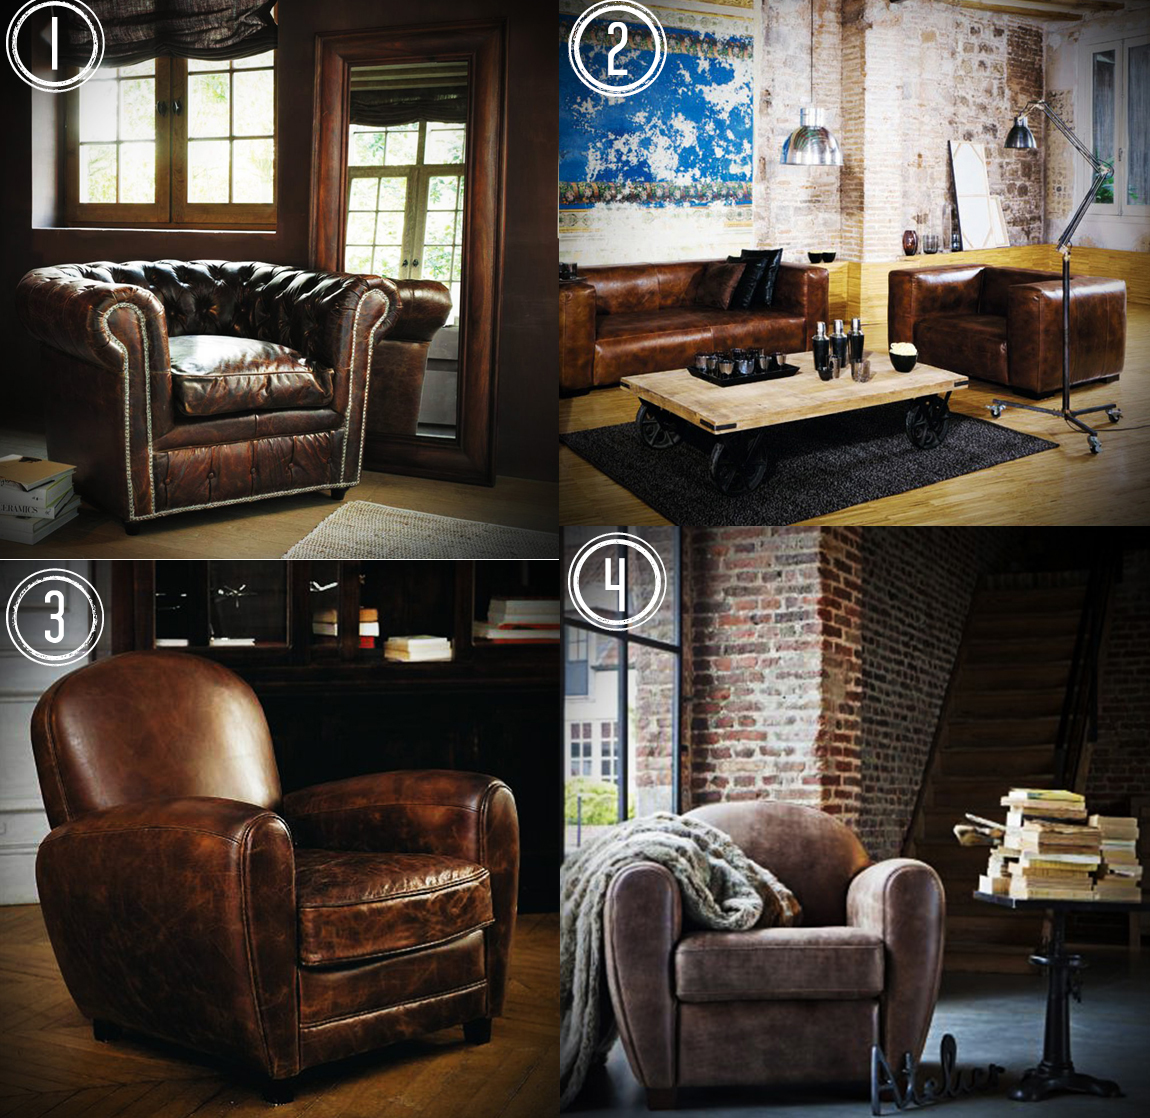 39 cause you need leather club seat. Black Bedroom Furniture Sets. Home Design Ideas